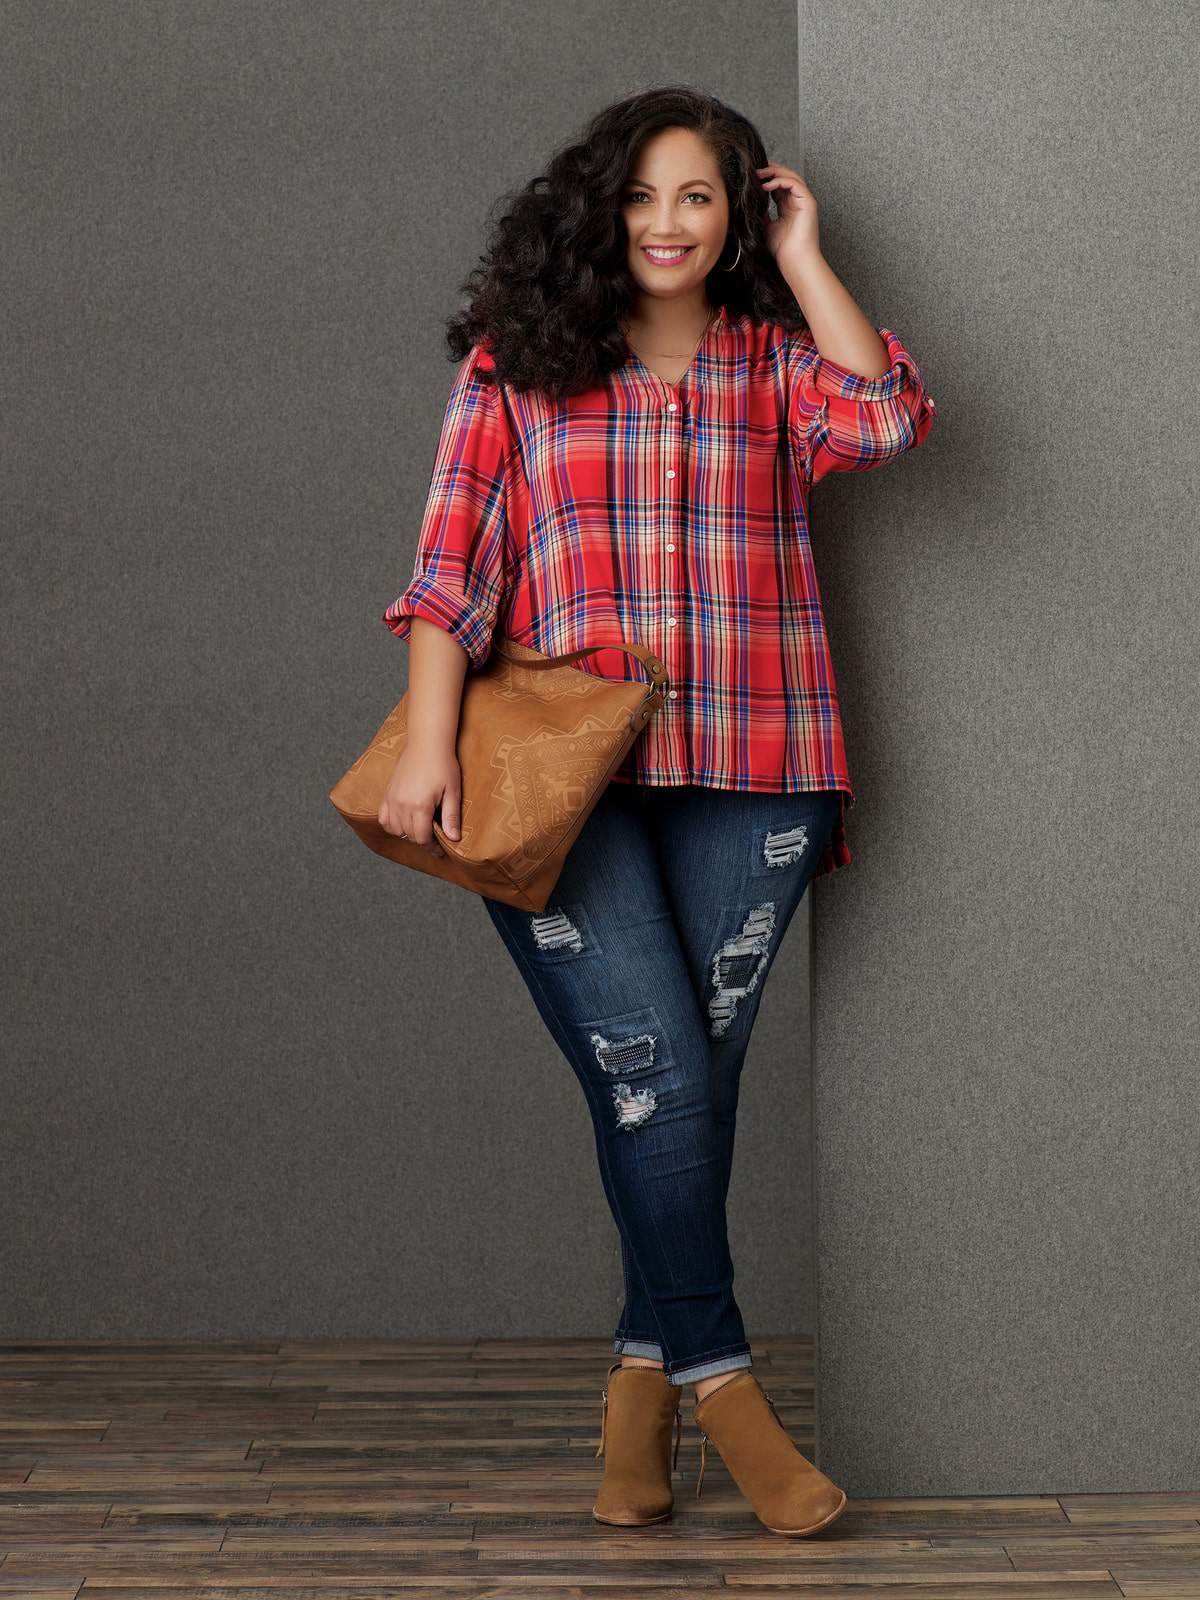 Sears SImply Emma Plus Size Red Plaid Shirt and Cropped Skinny Jeans